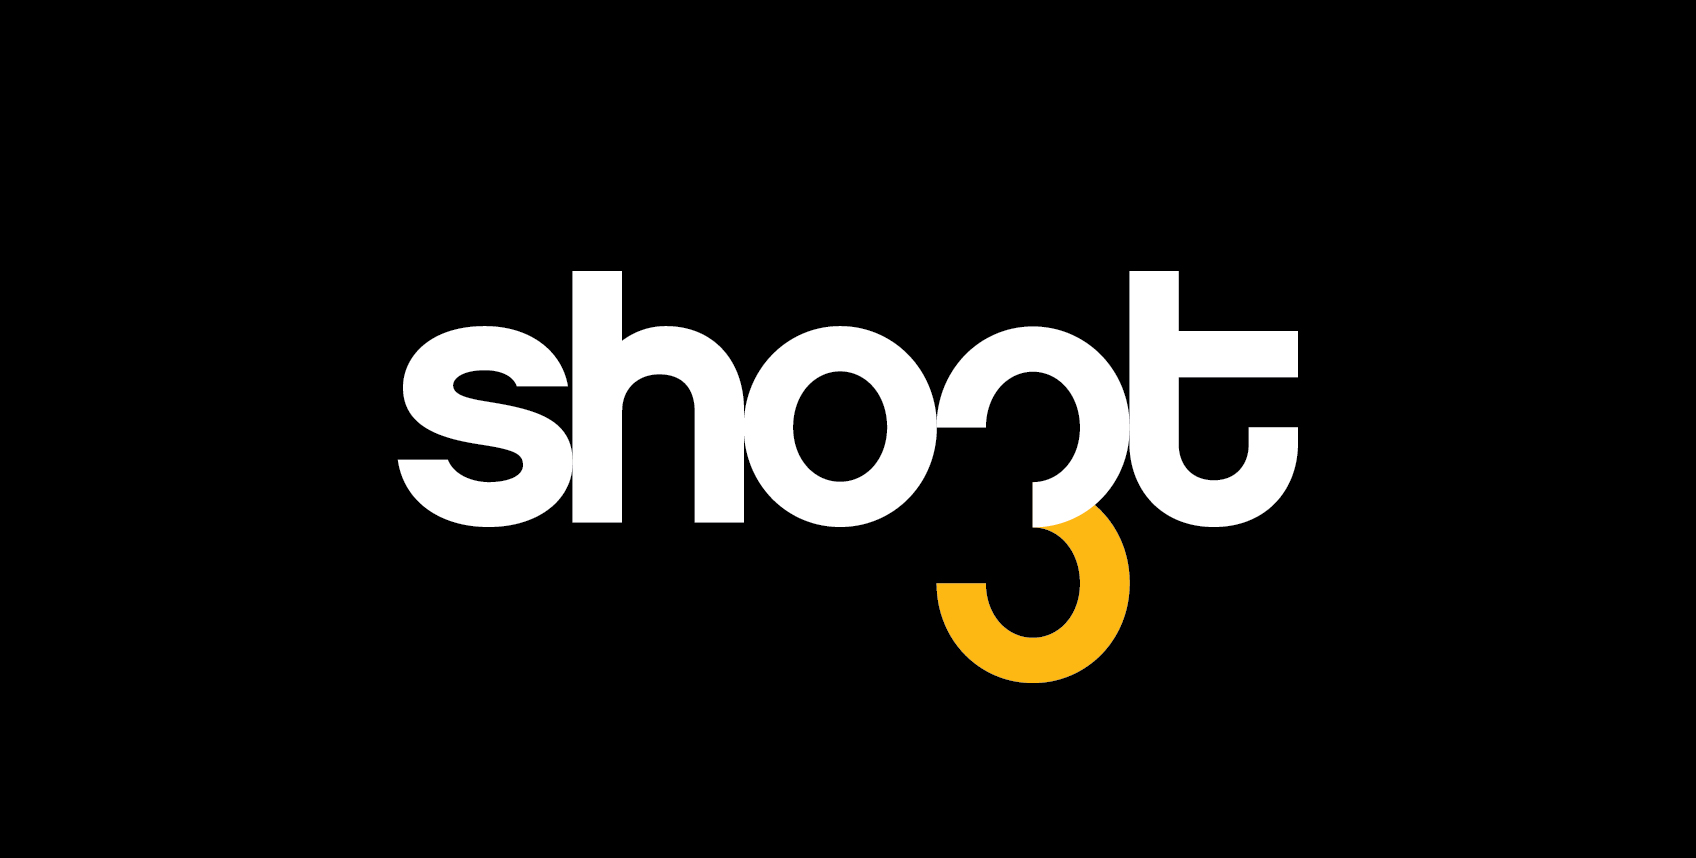 Shoot Studio